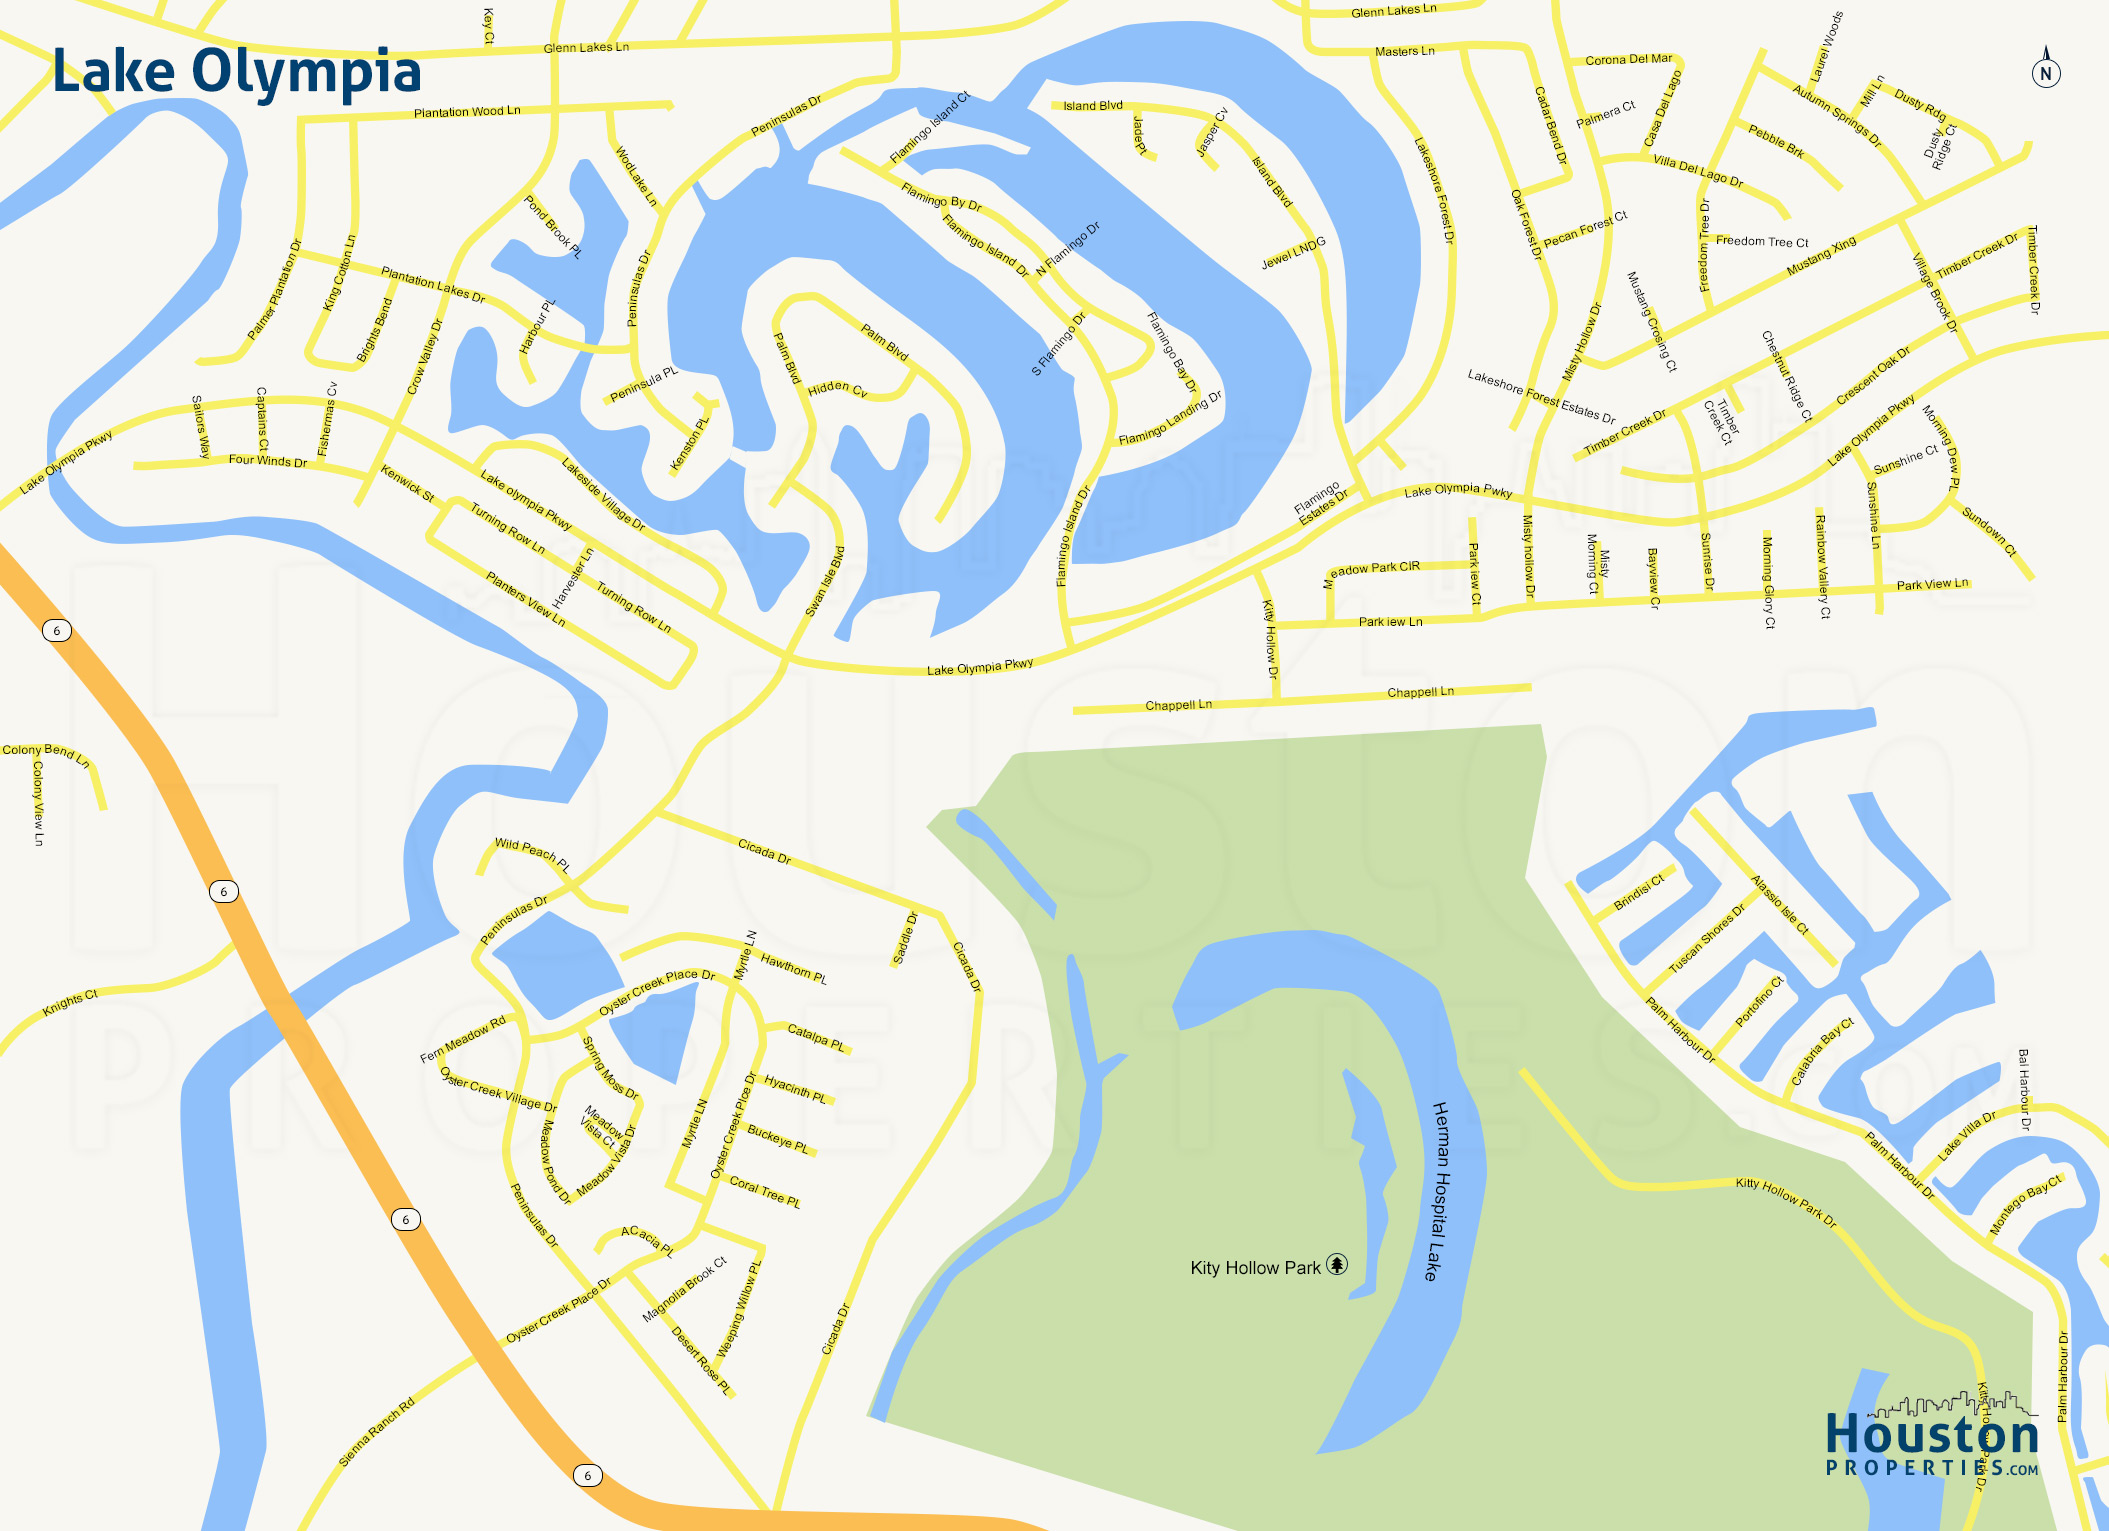 Map of Lake Olympia